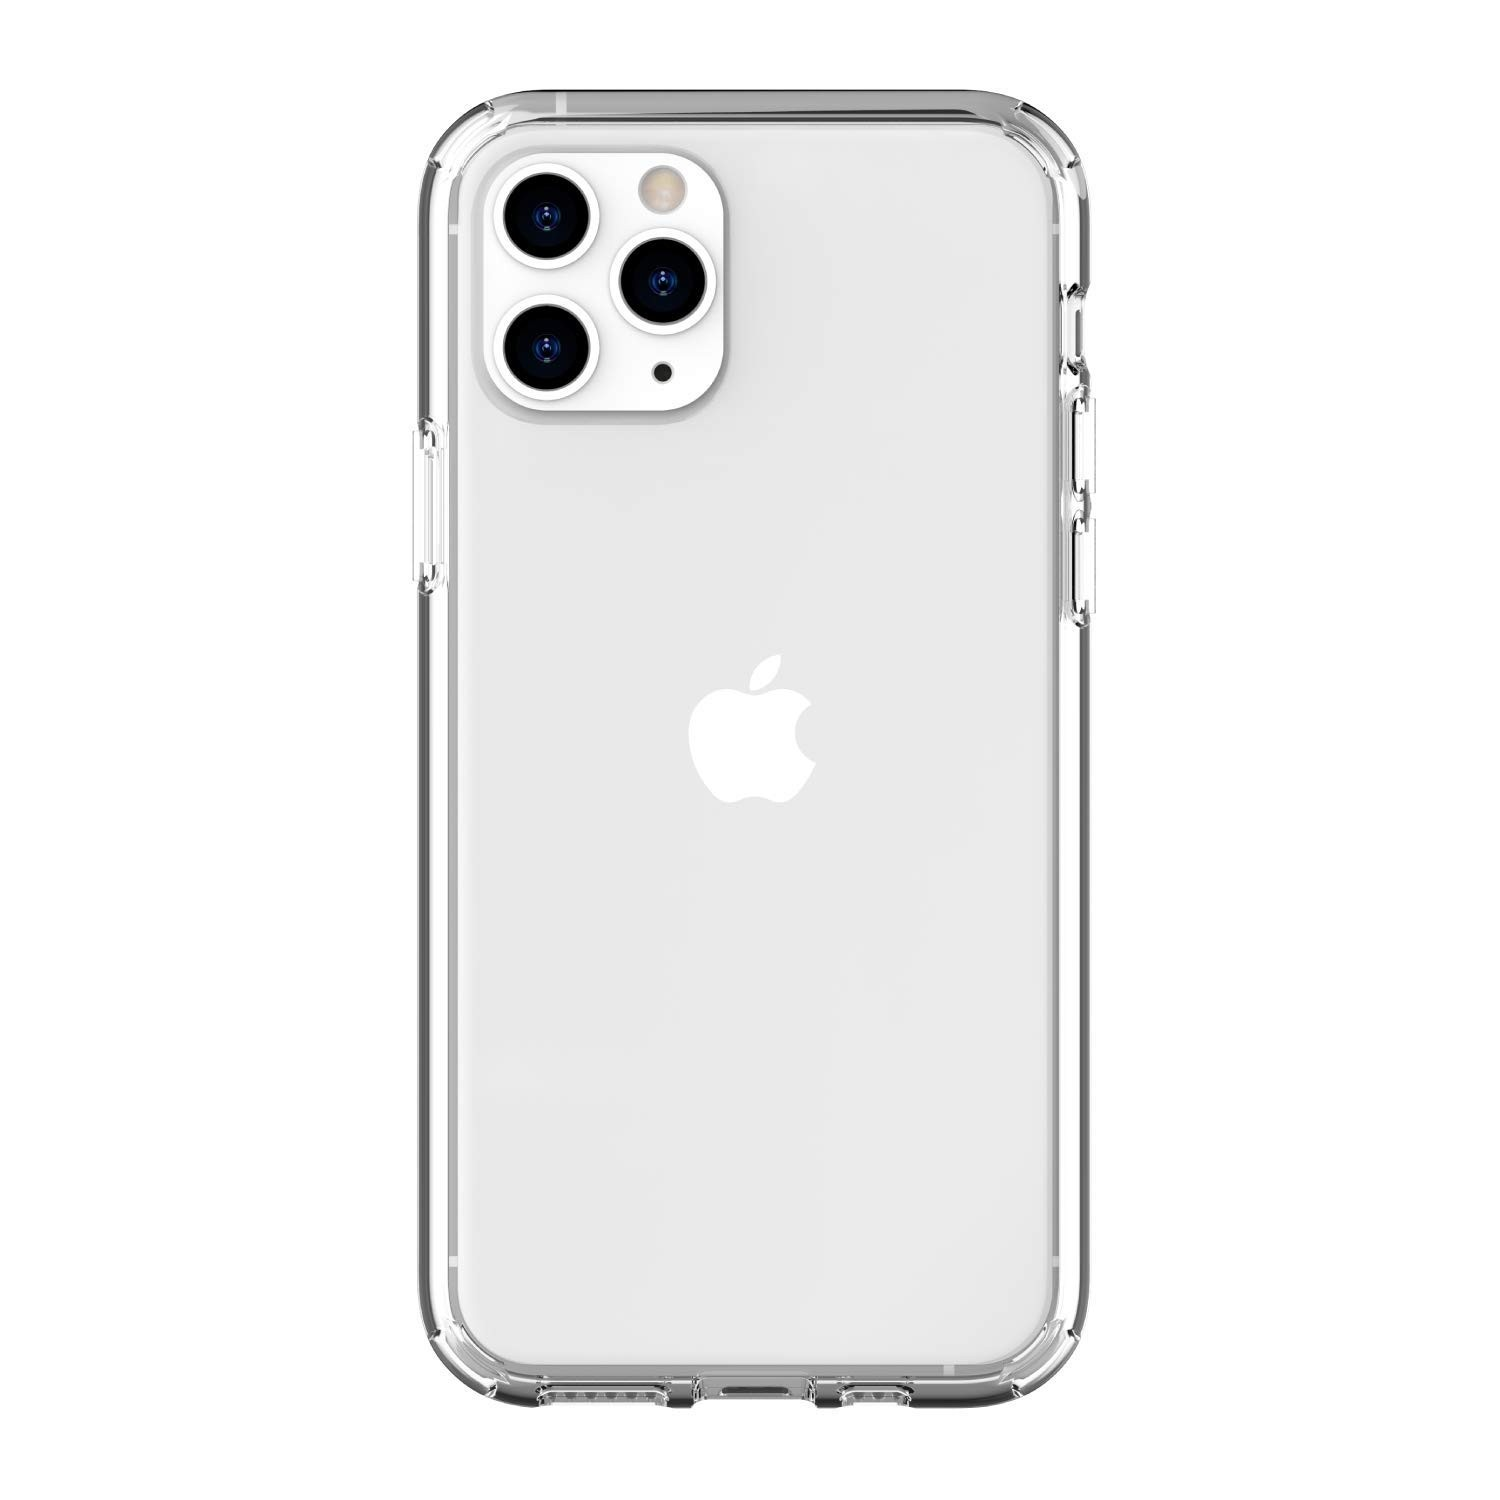 Just Mobile - TENC case for iPhone 11 Pro Max - Clear, PC-665CC